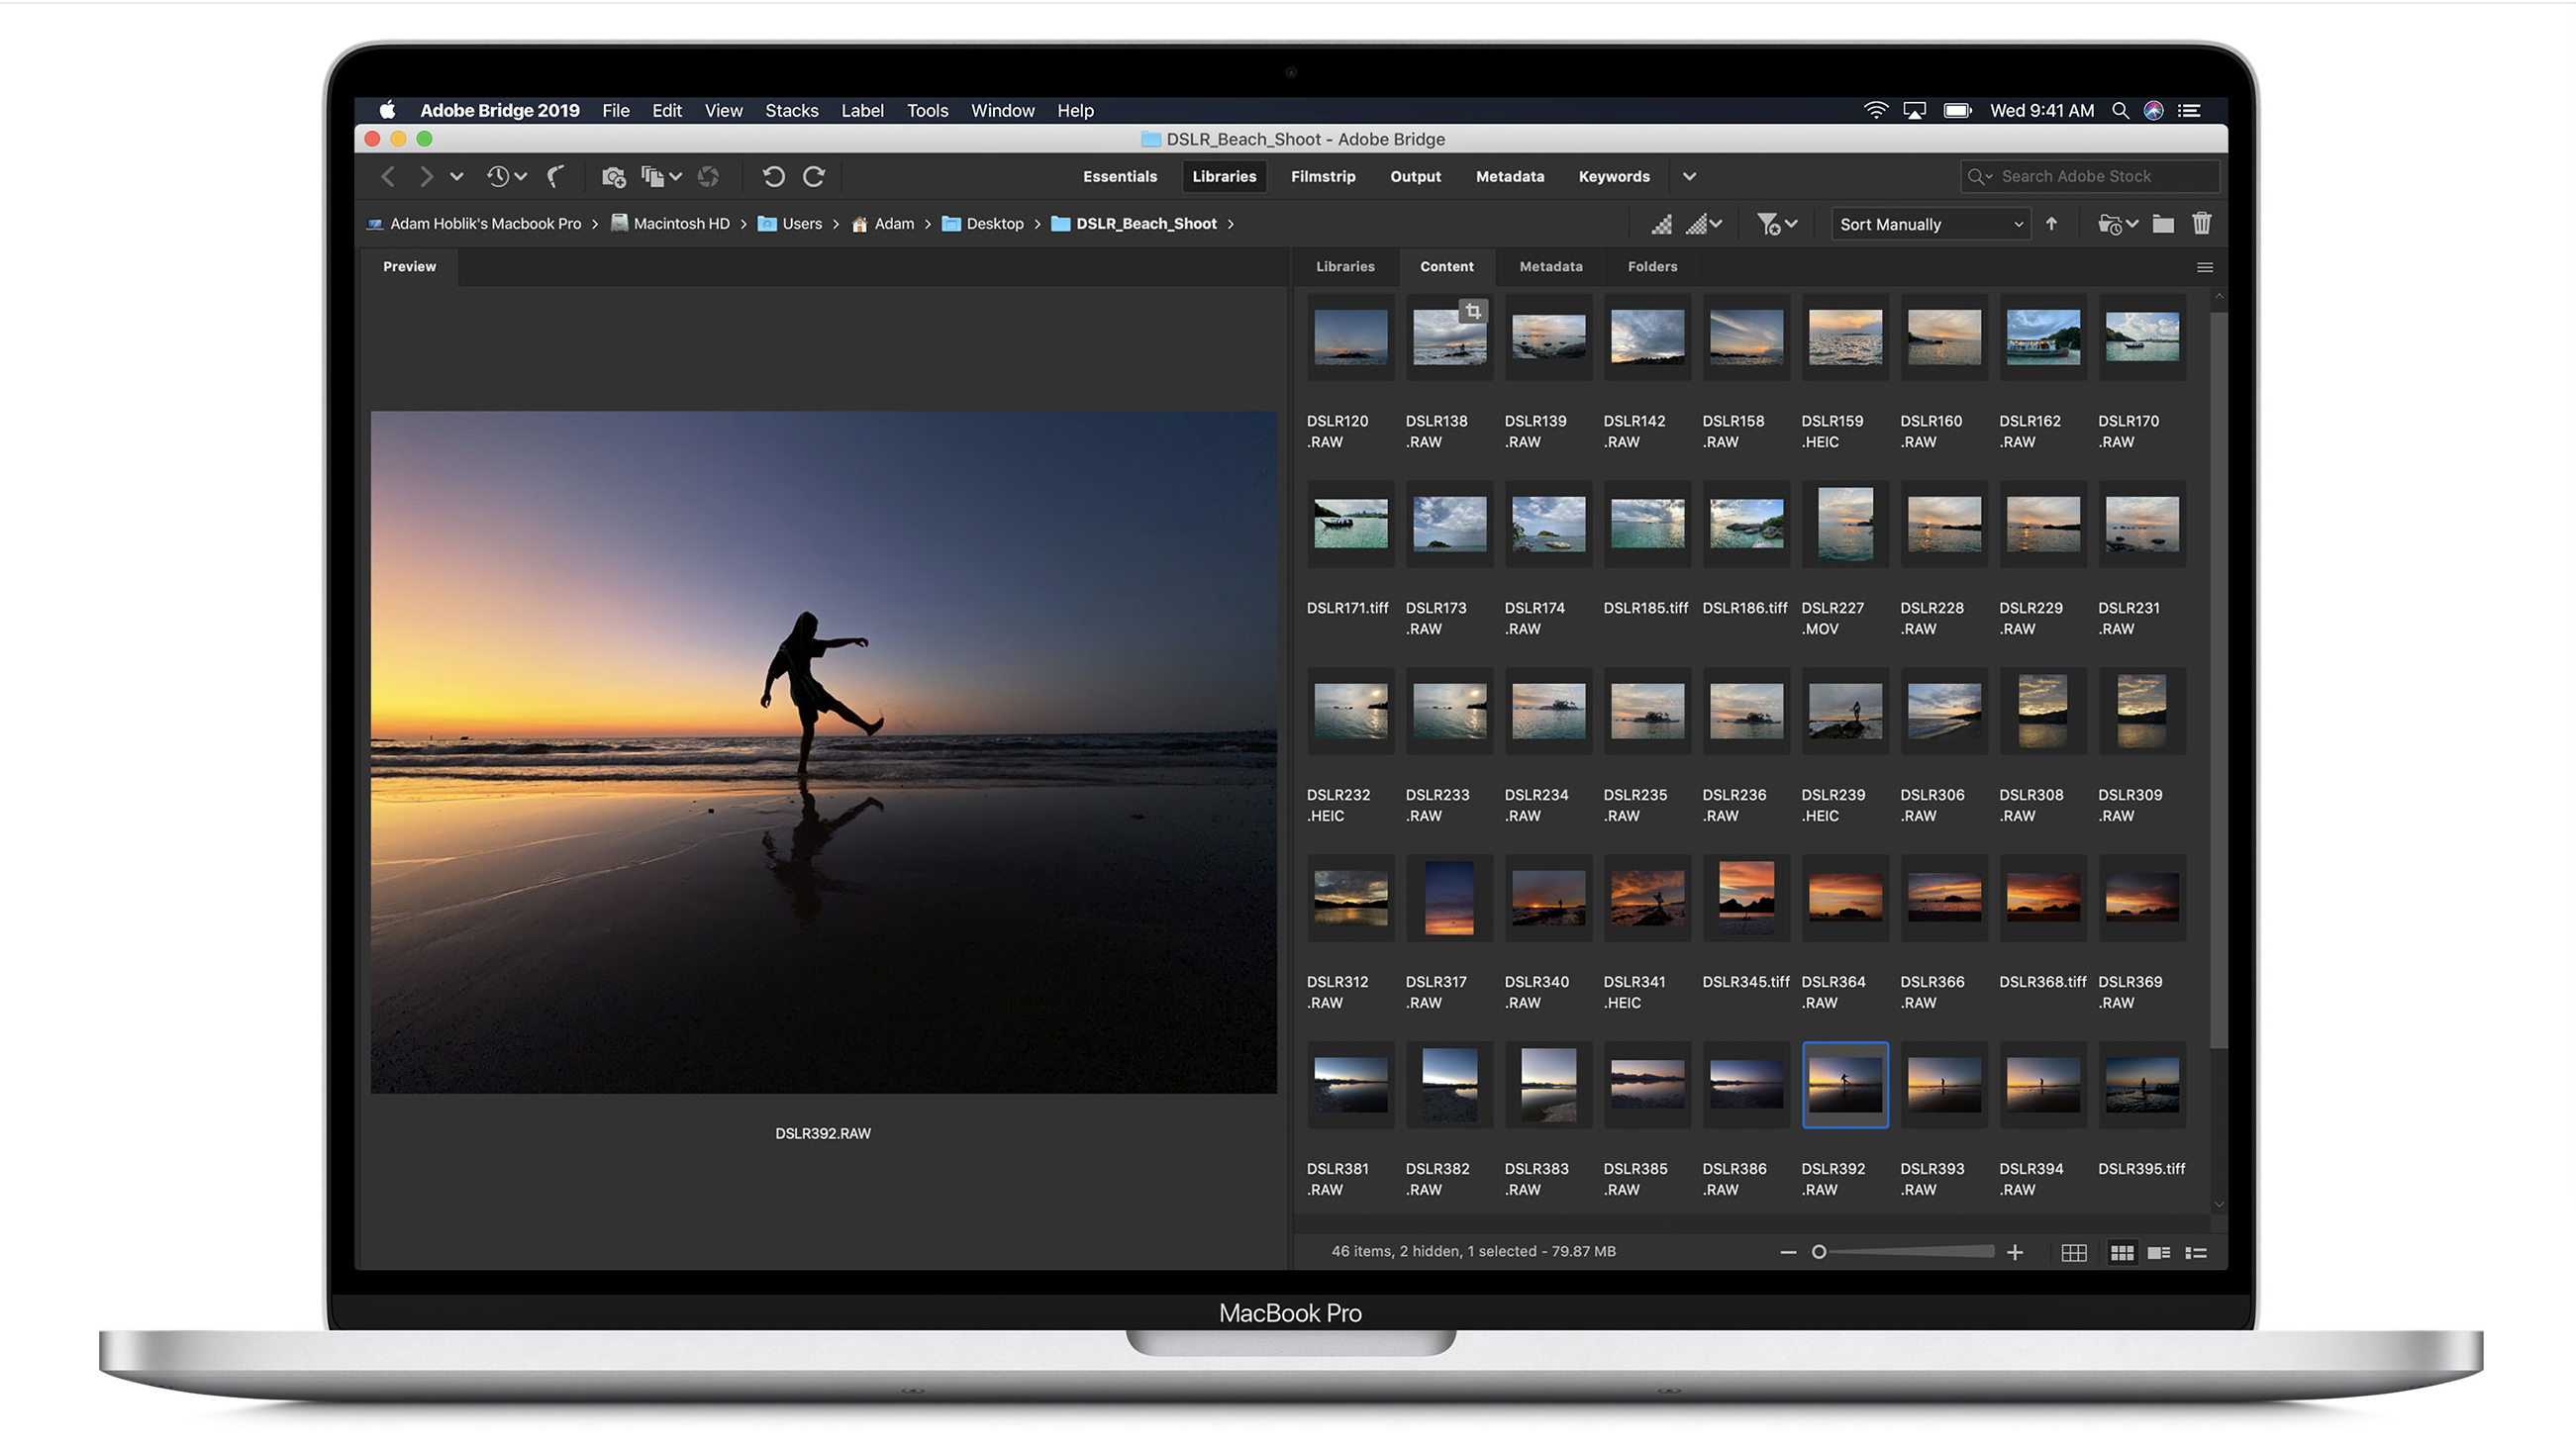 fotografie pe display-ul unui macbook pro 16 inci